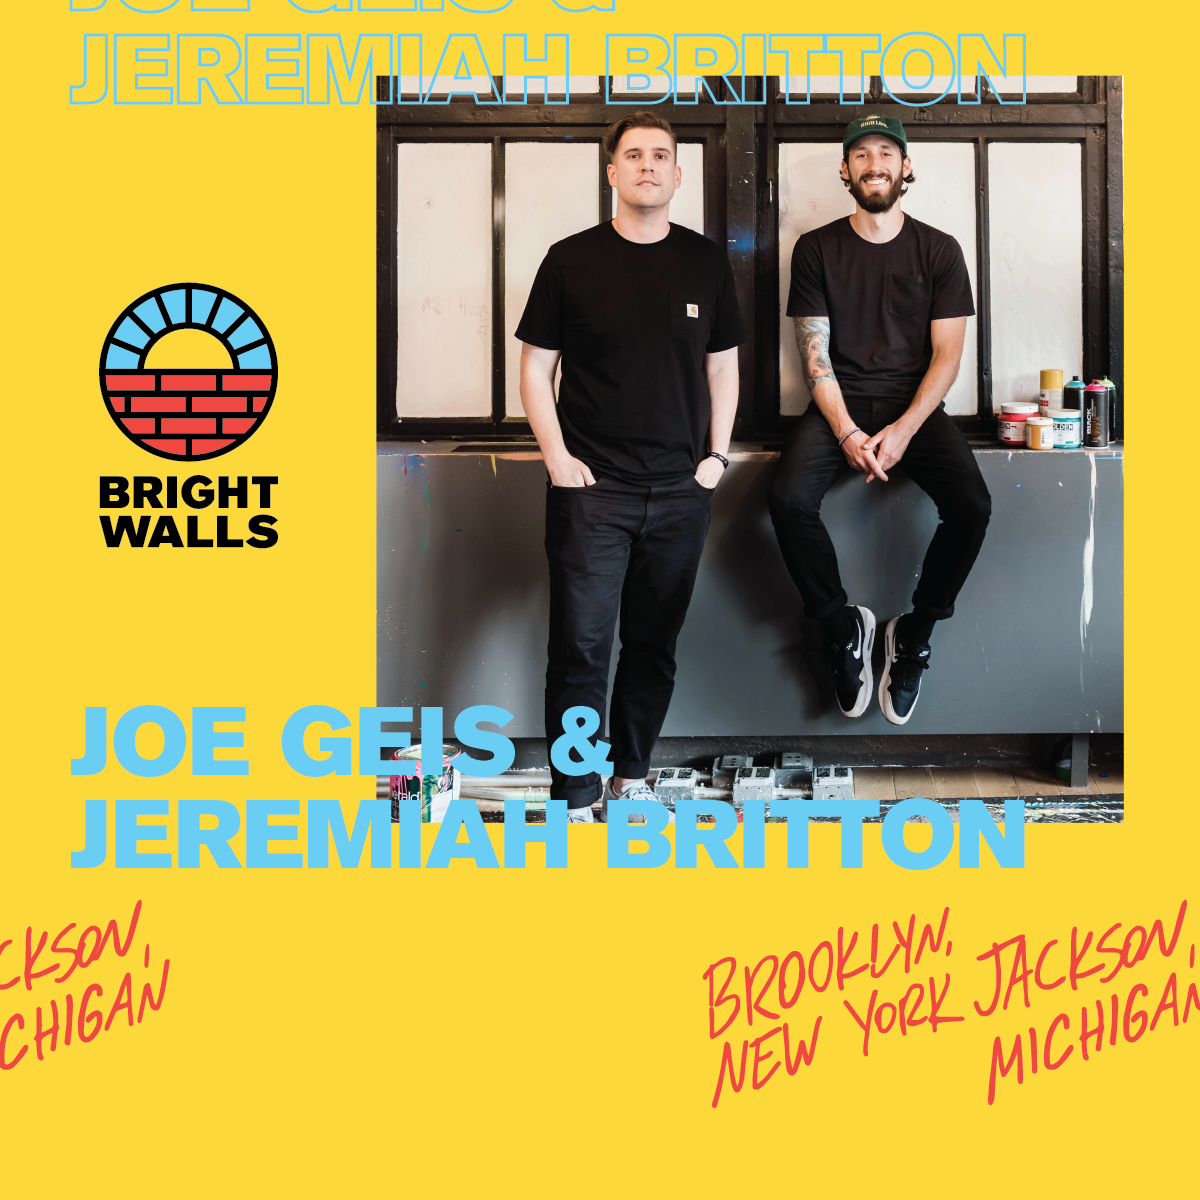 Joe Geis &Jeremiah BrittonBrooklyn, NY • Jackson, MI - By day, Joe and Jeremiah partner as the co-directors of WeWork's global art and graphics team in New York City. Their team is responsible for the design, creation, and curation of WeWork's global art program. Outside of that, both Joe and Jeremiah each have their own practice as designers and artists working on range of personal studio projects and freelance commissions.Joe's personal work explores the balance and movement of line, shape, and negative space mixed with color, illustration, and environmental installation. His artwork has been shown in gallery shows and festivals across the country, while his art and illustration has been commissioned by everyone from De La Soul to one of the nation's largest food festivals, EatsCon. Jeremiah's work pushes the boundaries of contemporary graphic design and fine art through typography, pattern, and collage. His artwork has been exhibited in galleries and public mural festivals, while his graphic design work has been commissioned by brands such as AOL, West Elm, and Samsung.While Joe and Jeremiah spend their days building and managing a global team, this will be the first time the two of them have collaborated on a large scale art installation in over a year. We are excited to have them join us at Bright Walls to share some of their new work together.